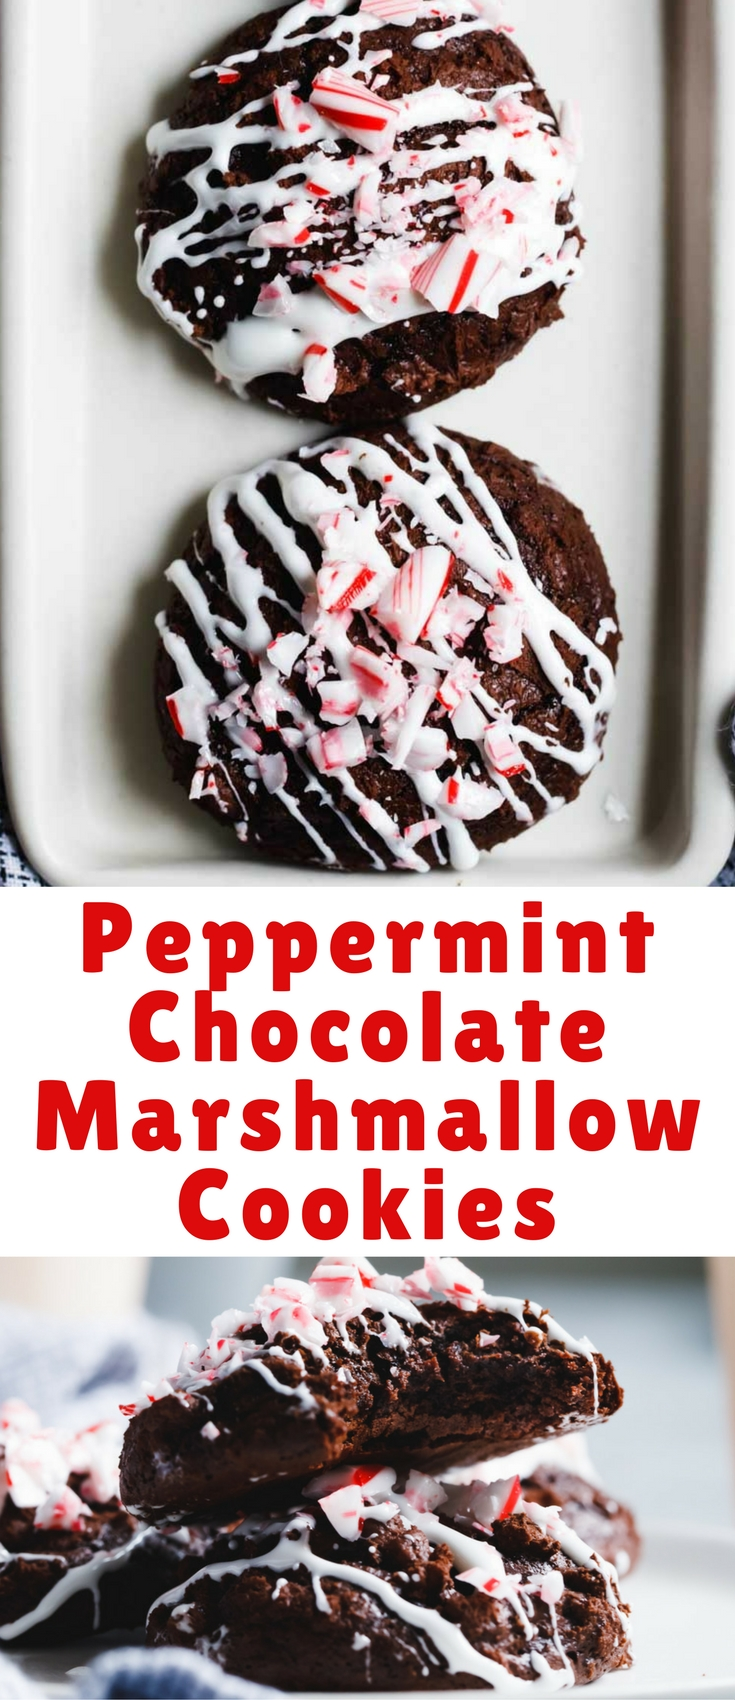 These peppermint chocolate marshmallow cookies are my latest wintery midnight jam.